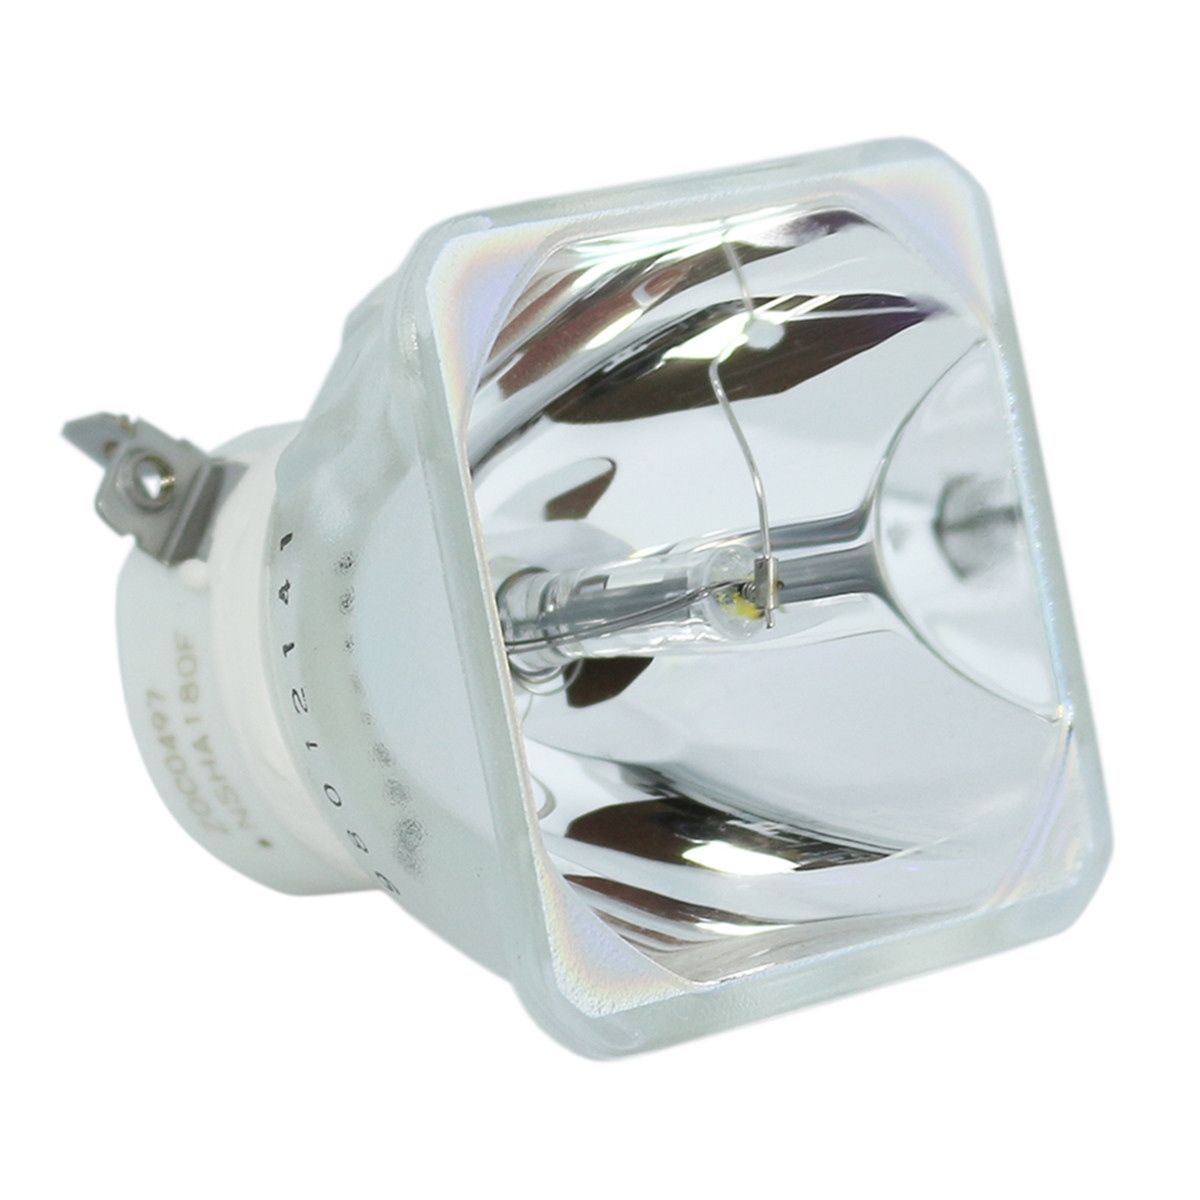 Compatible Bare Bulb LV LP32 4330B001AA for Canon LV 7380/LV 7280/LV 7285  Projector Lamp Bulb without housing bare lamp projector lamp projector bulb - title=